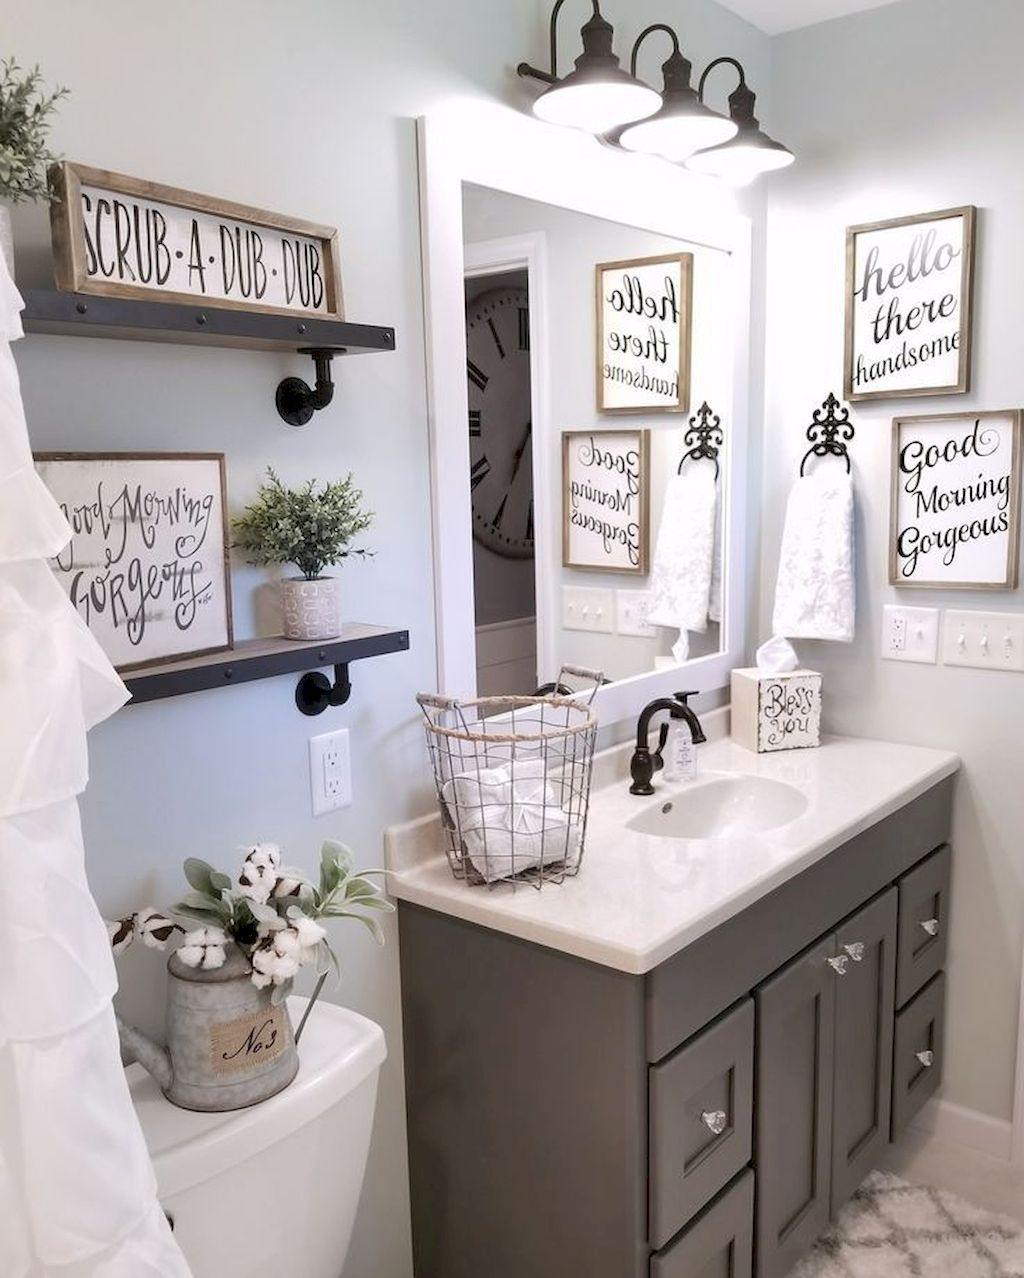 110 Spectacular Farmhouse Bathroom Decor Ideas in 2018 | Renovation ...